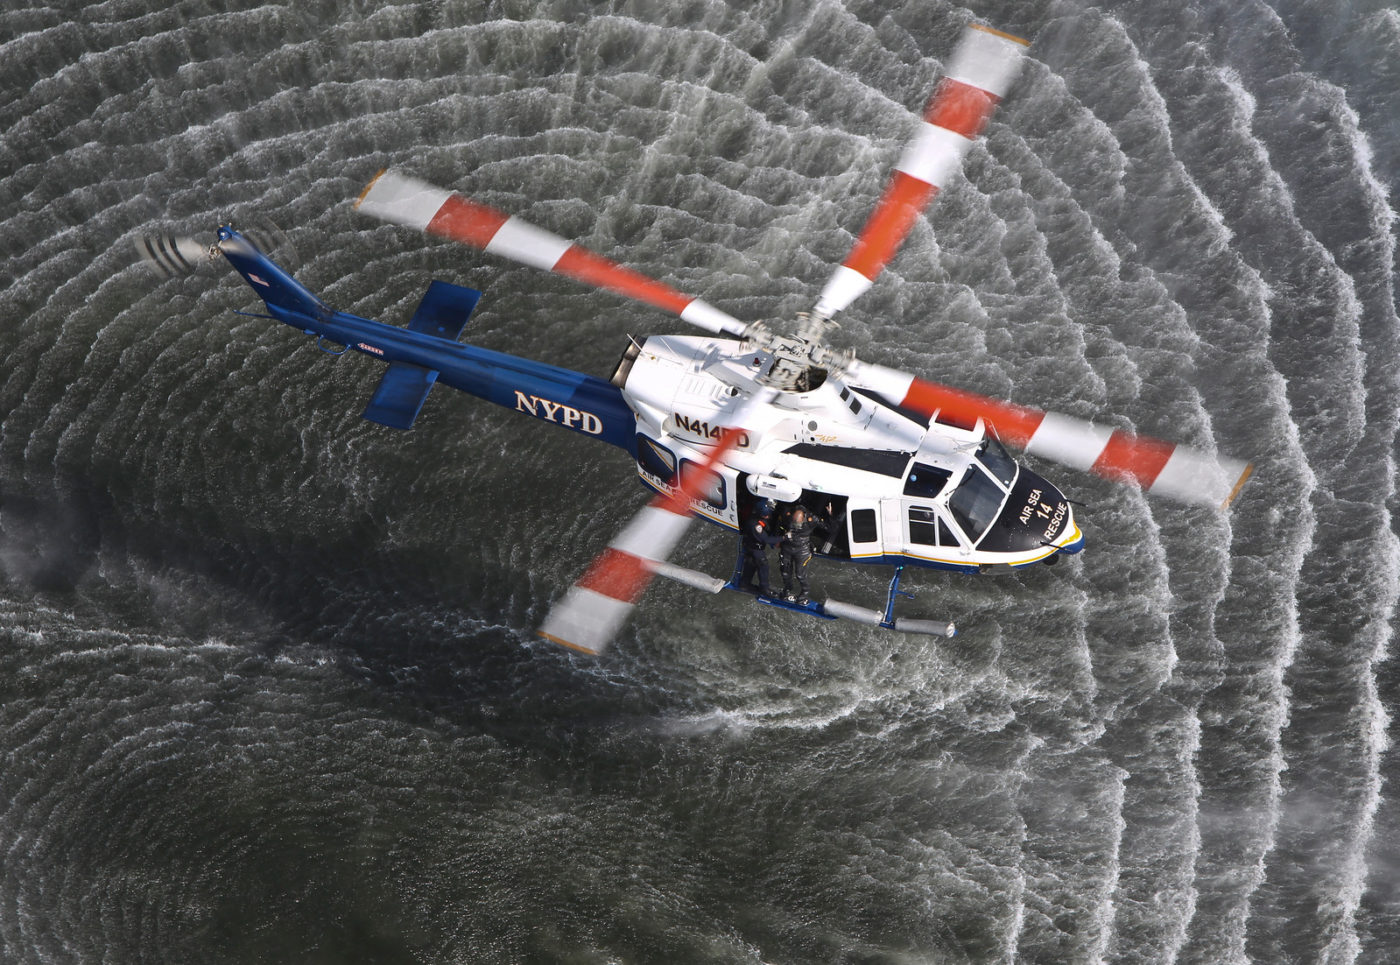 Safely deploying divers from a helicopter demands specialized equipment and procedures. The New York City Police Department Air & Sea Rescue Unit has expertise in diver deployments honed over years of practice. Sheldon Cohen Photo